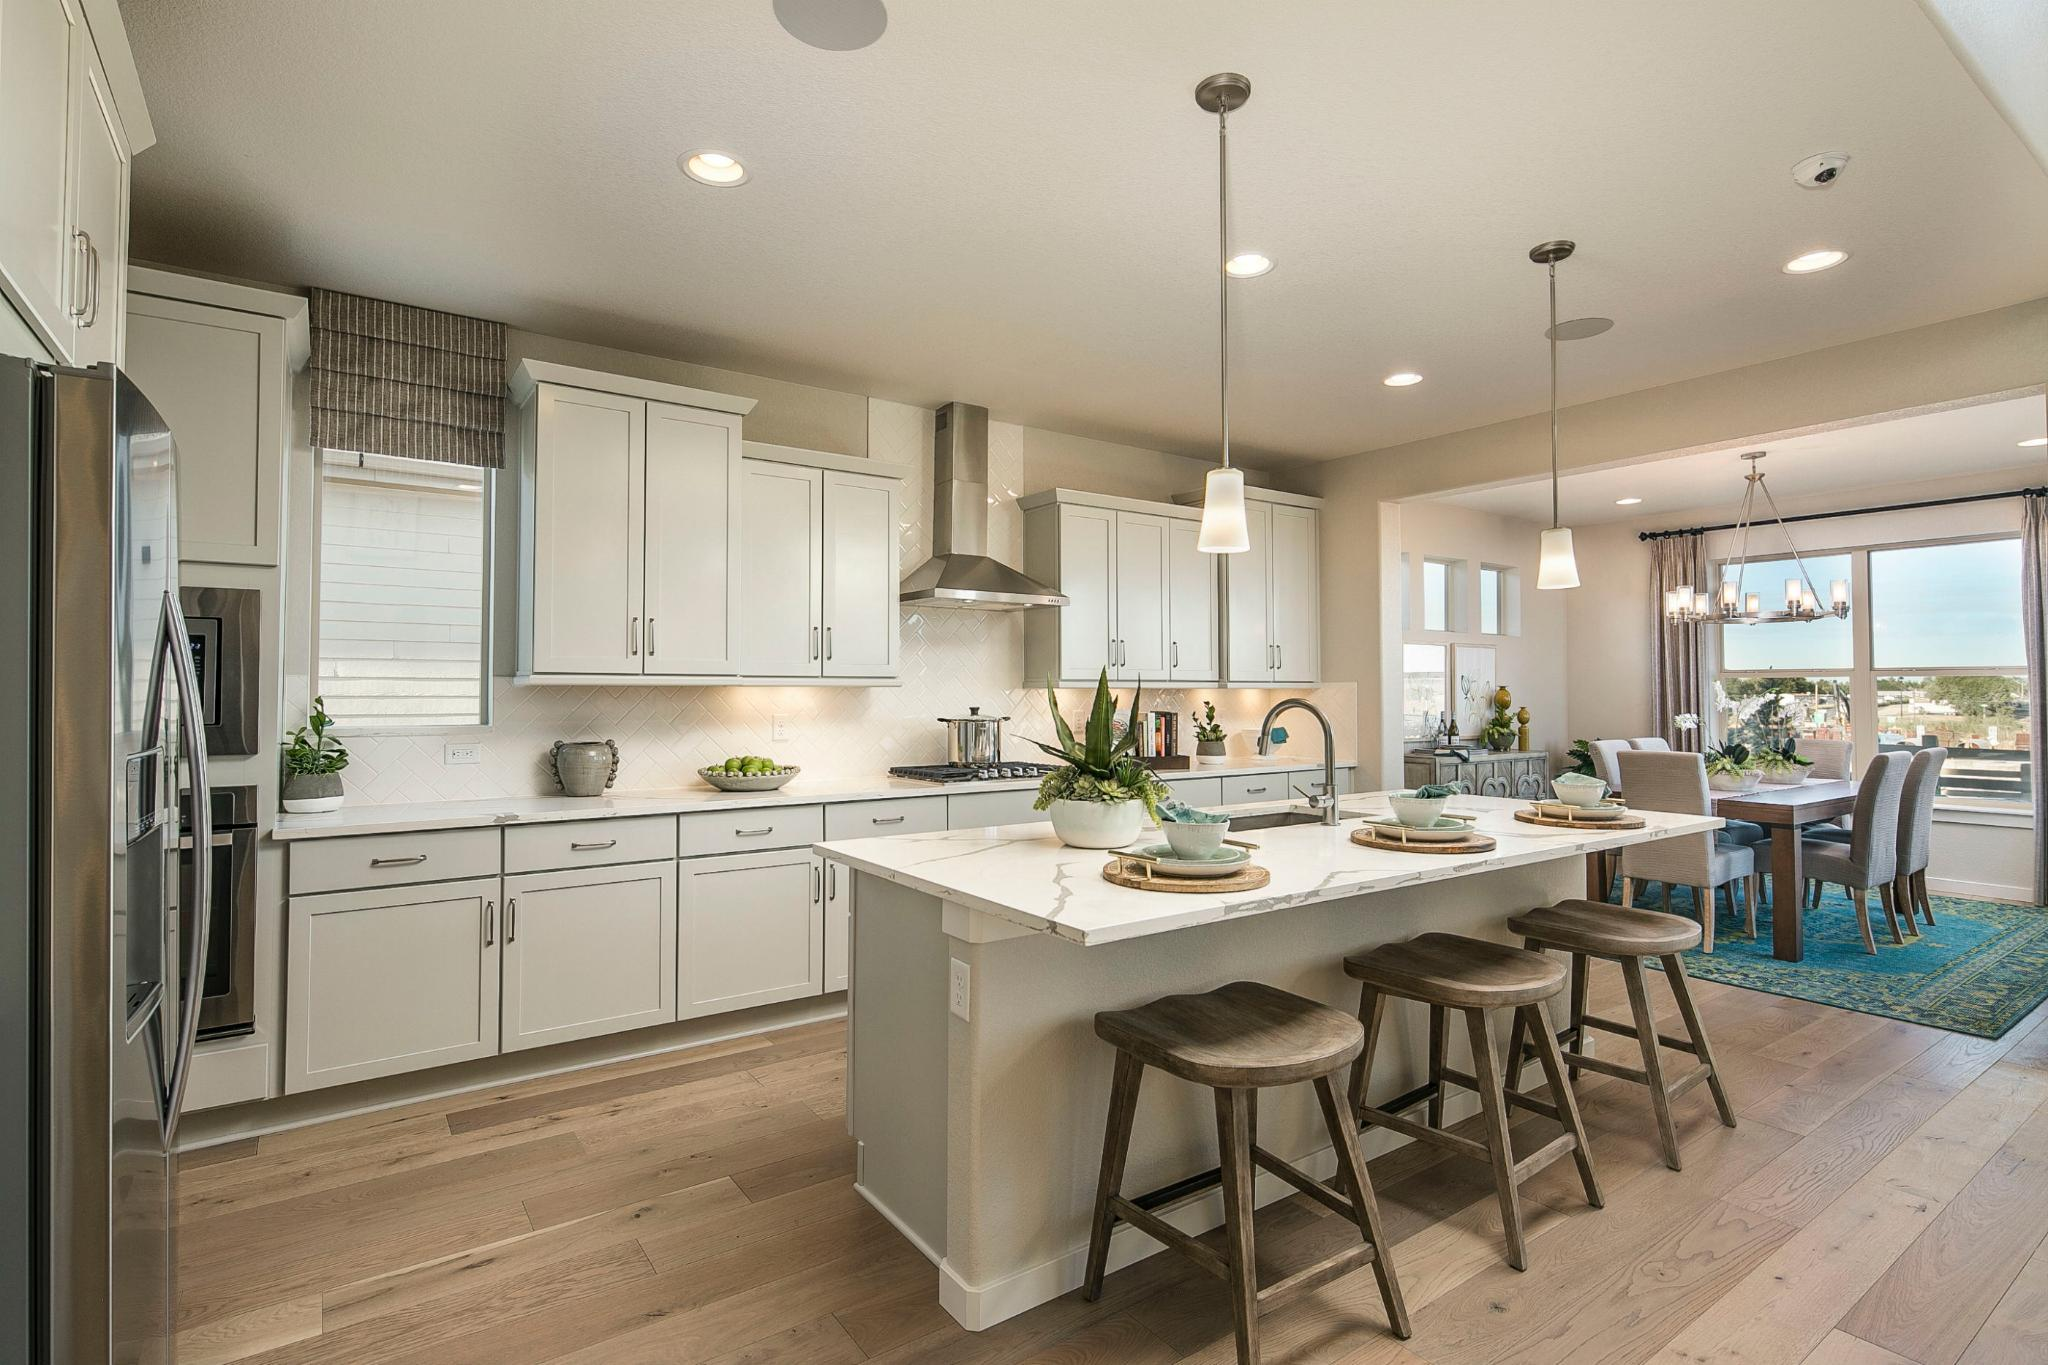 Kitchen featured in the Plan C505 By American Legend Homes in Greeley, CO